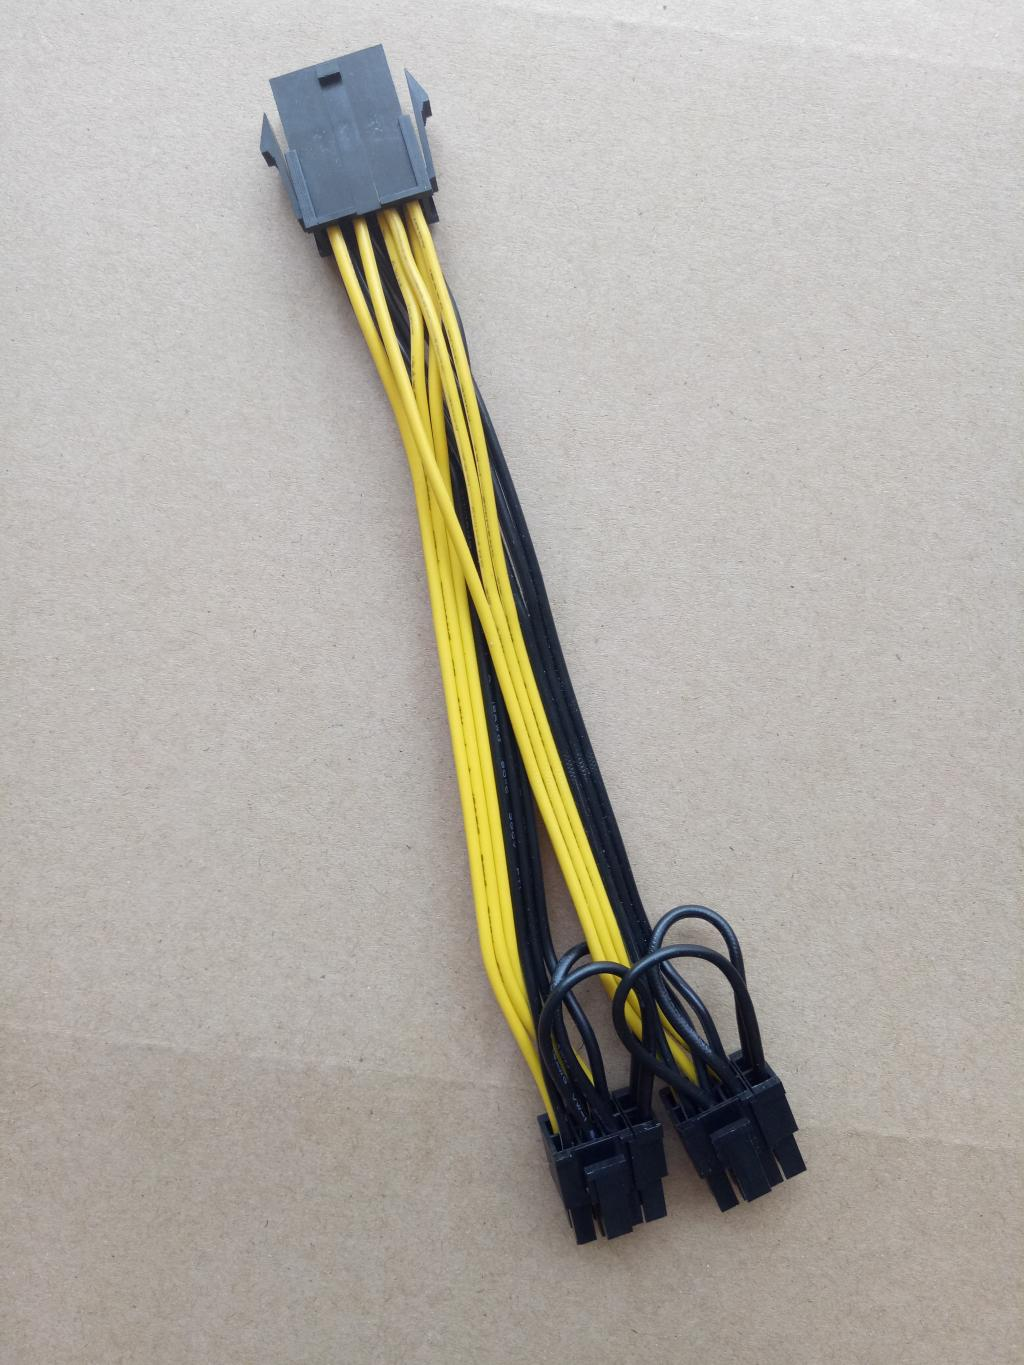 8pin to 2x 8 pin cable wierd cable configuration is this correct tom s hardware forum [ 1024 x 1365 Pixel ]